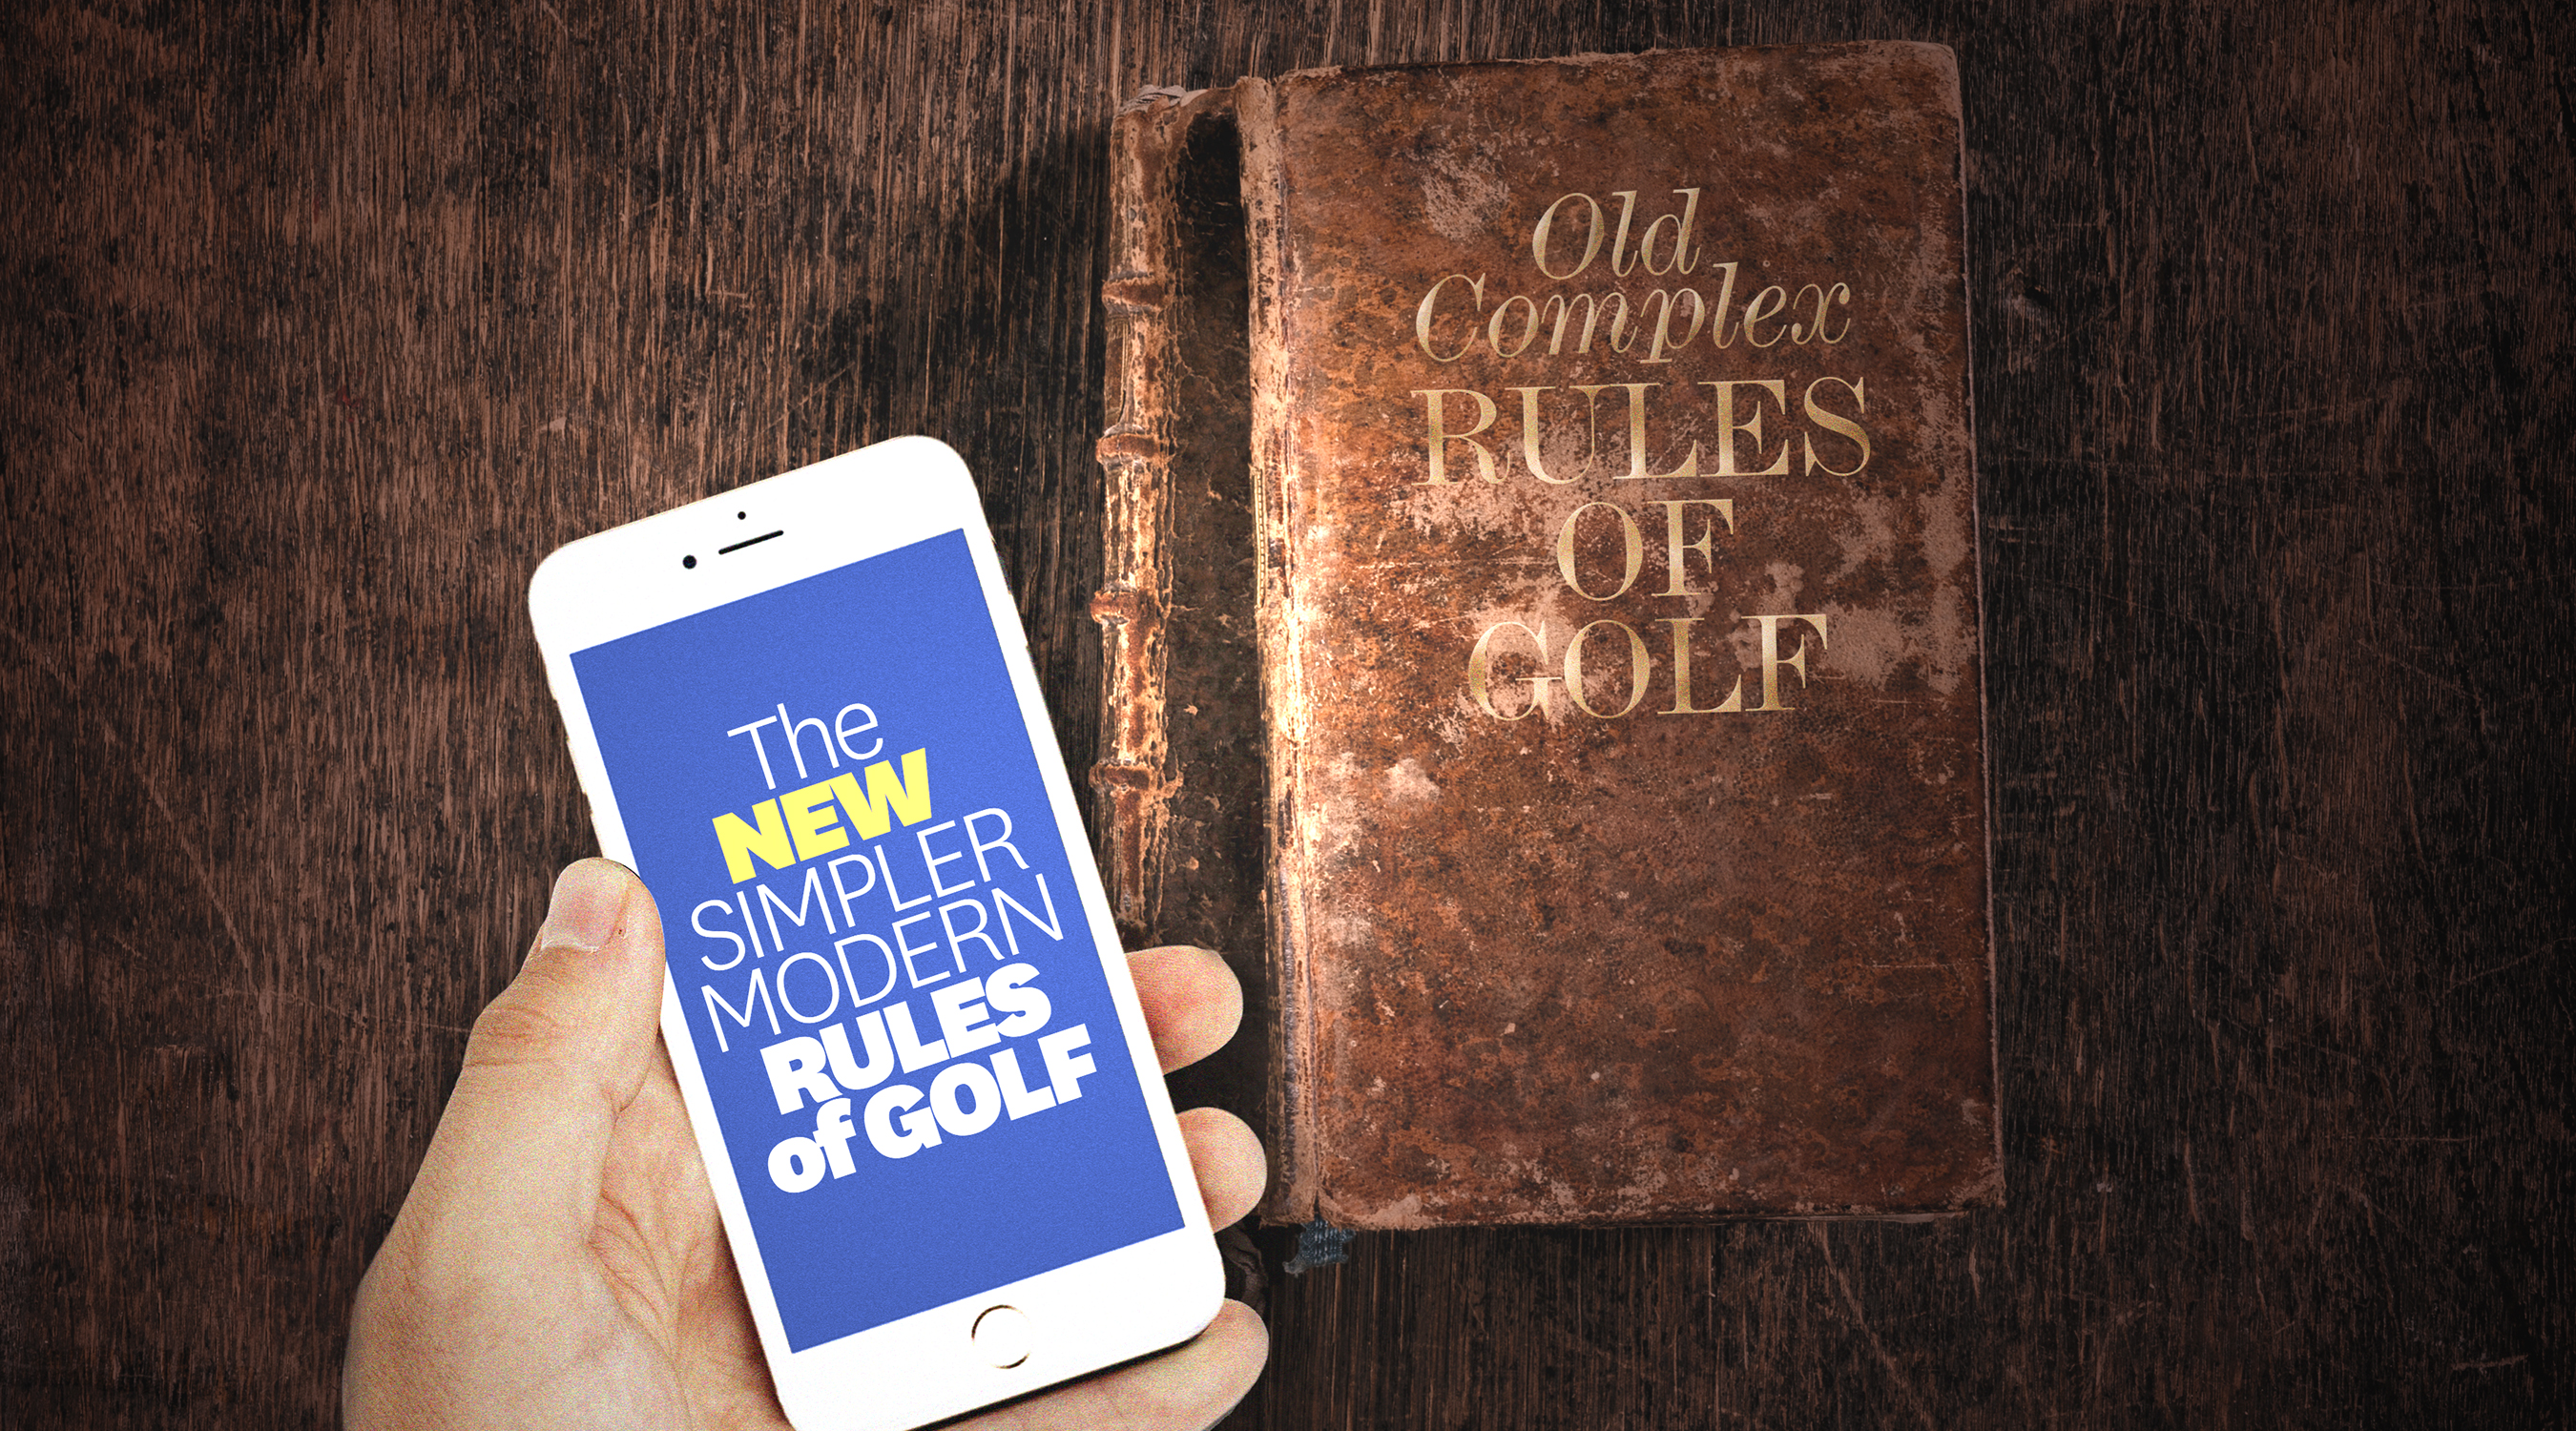 The USGA and R&A unveiled a preview of proposed new Rules of Golf, a major step in an ongoing effort to make those rules easier to understand and apply.